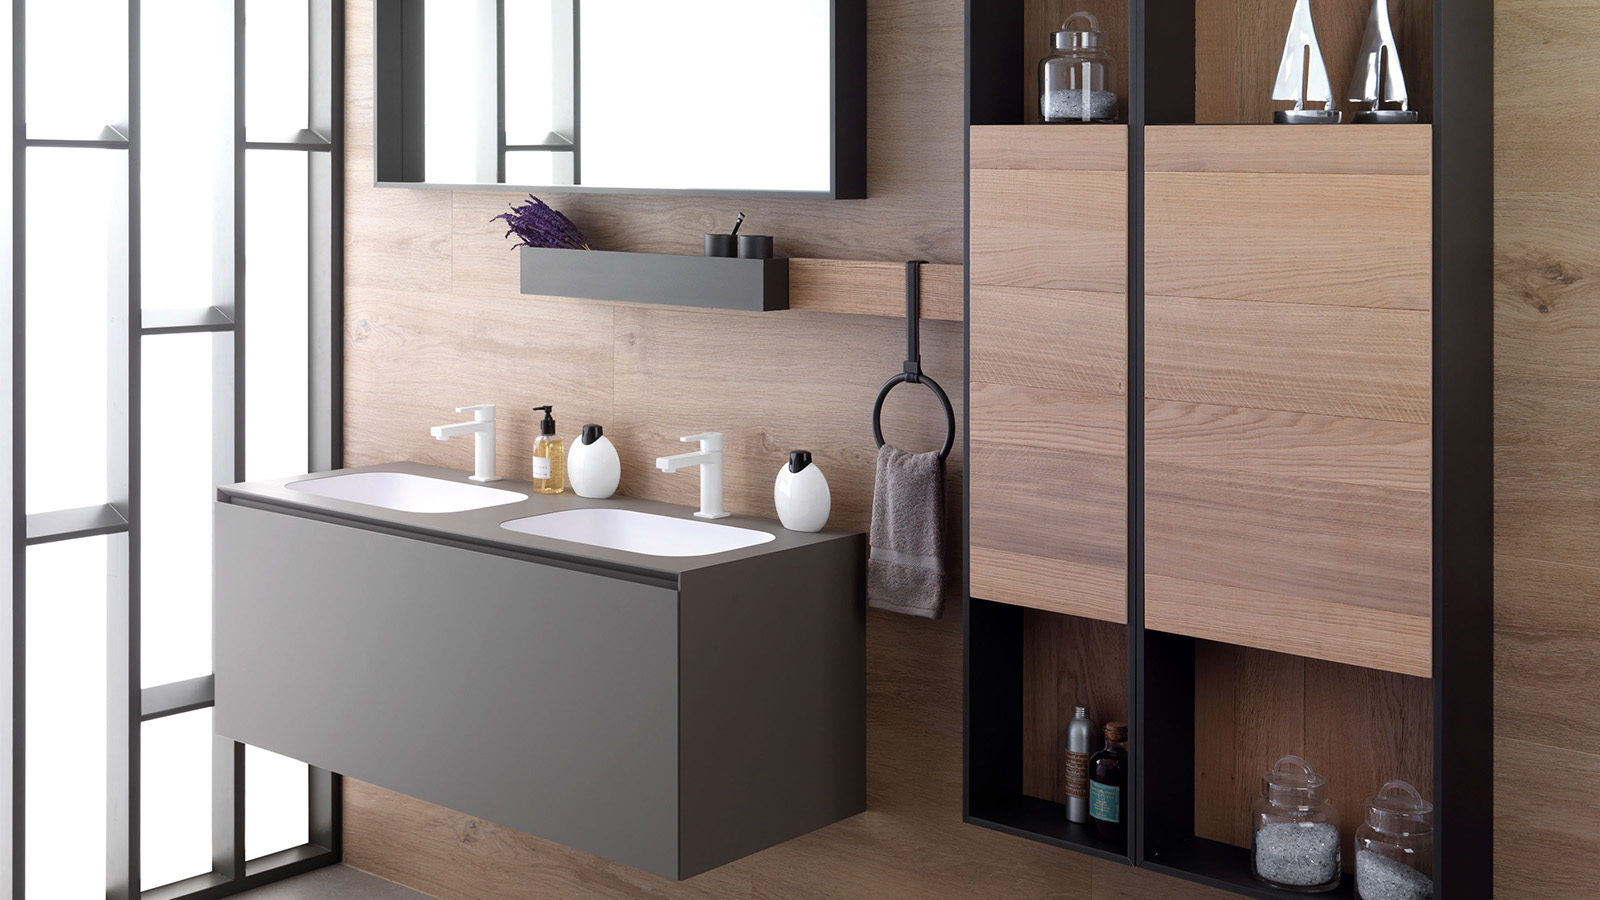 The best bathroom wall storage cabinet ideas to achieve order & beauty